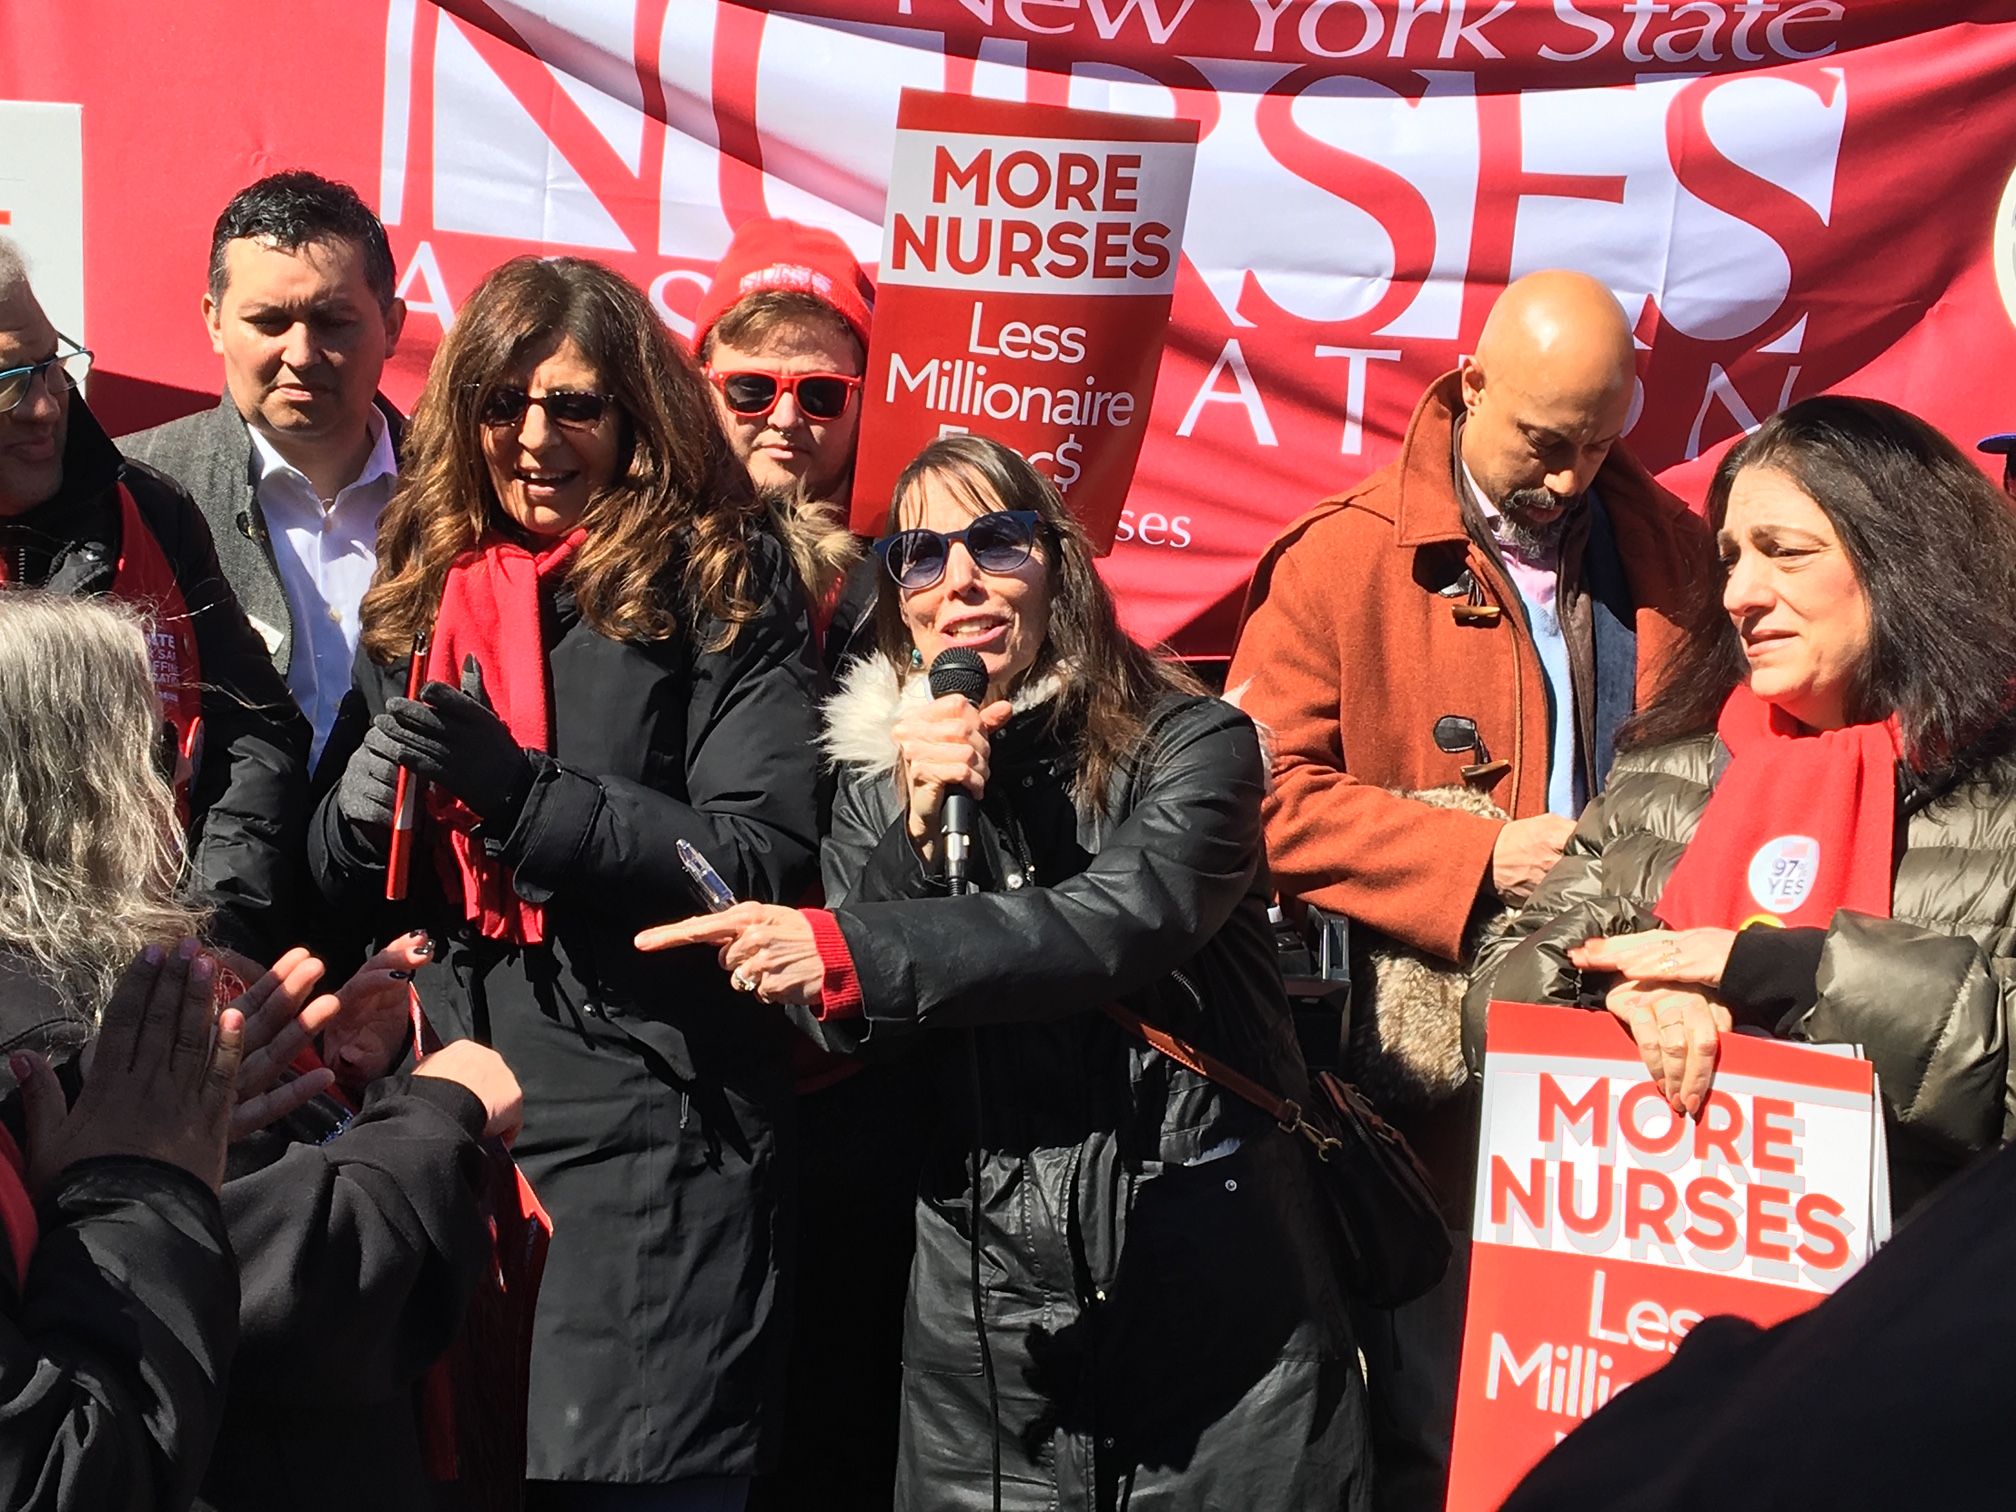 N Y  nurses union gives 10-day strike notice to major health systems